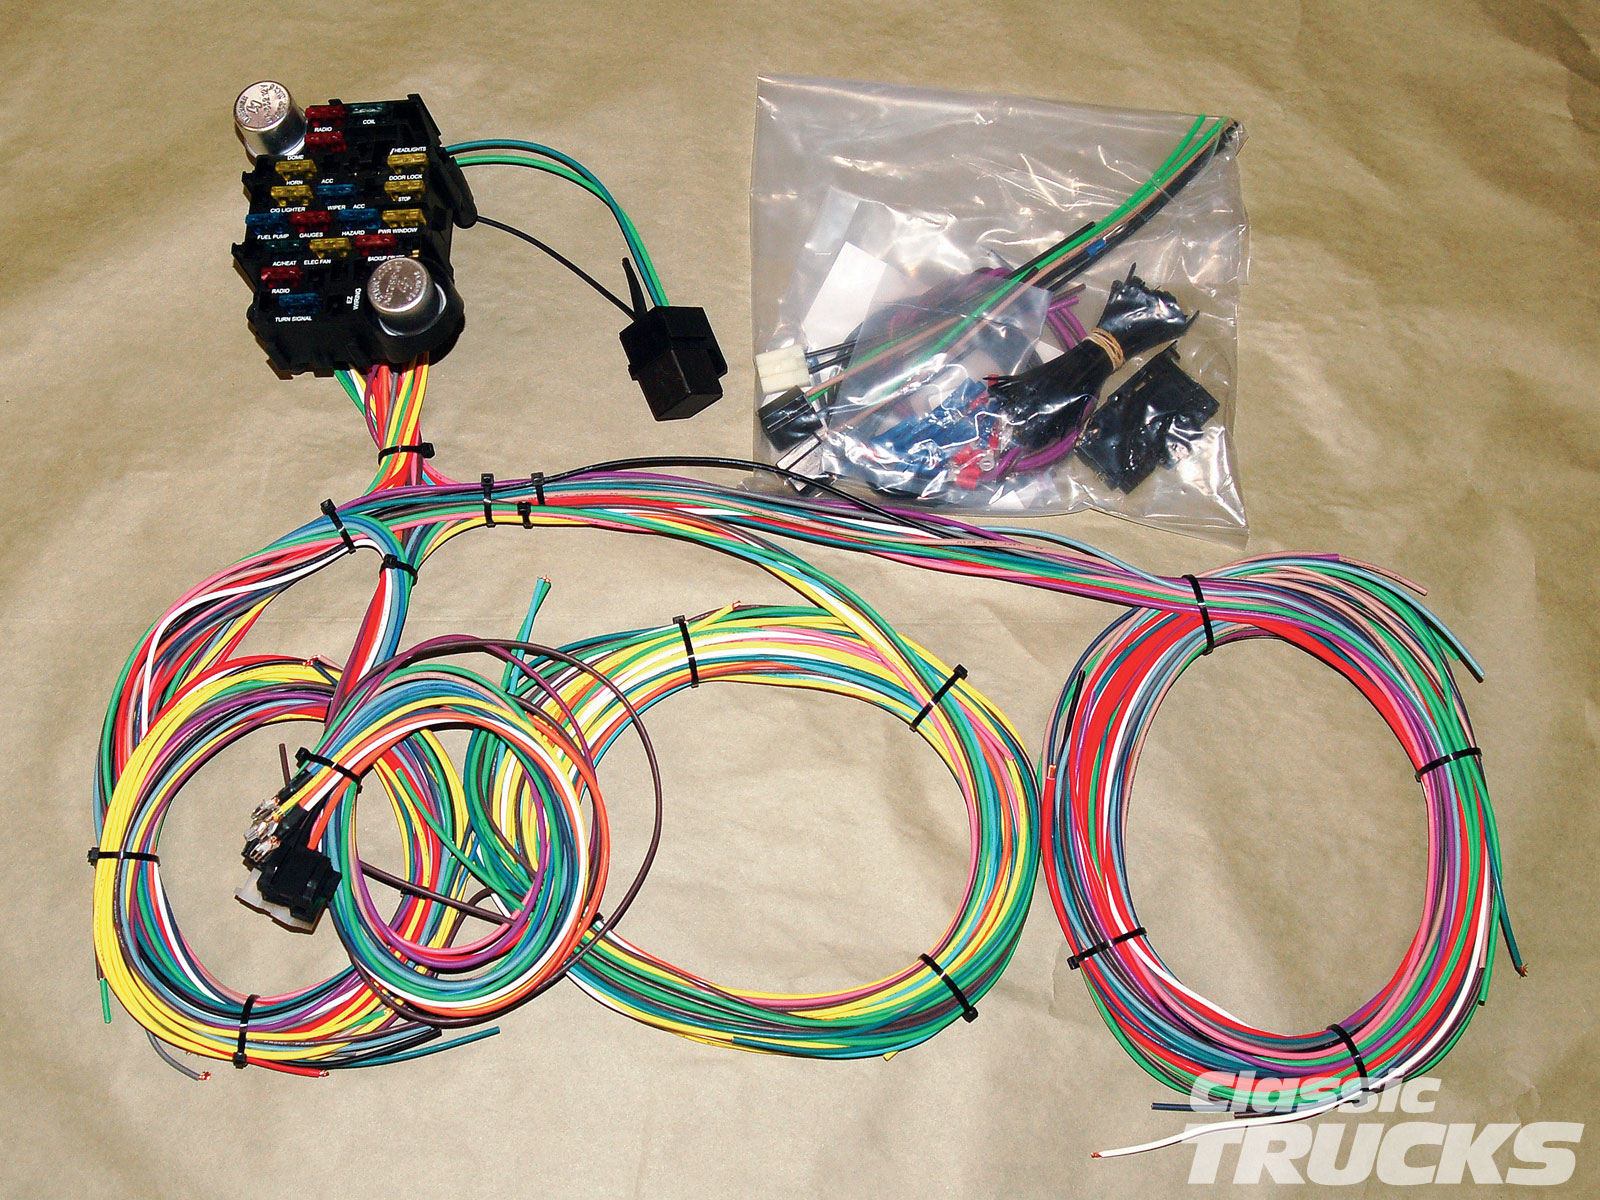 H11 Wire Harness Autozone Headlight Wiring Harness Replacement